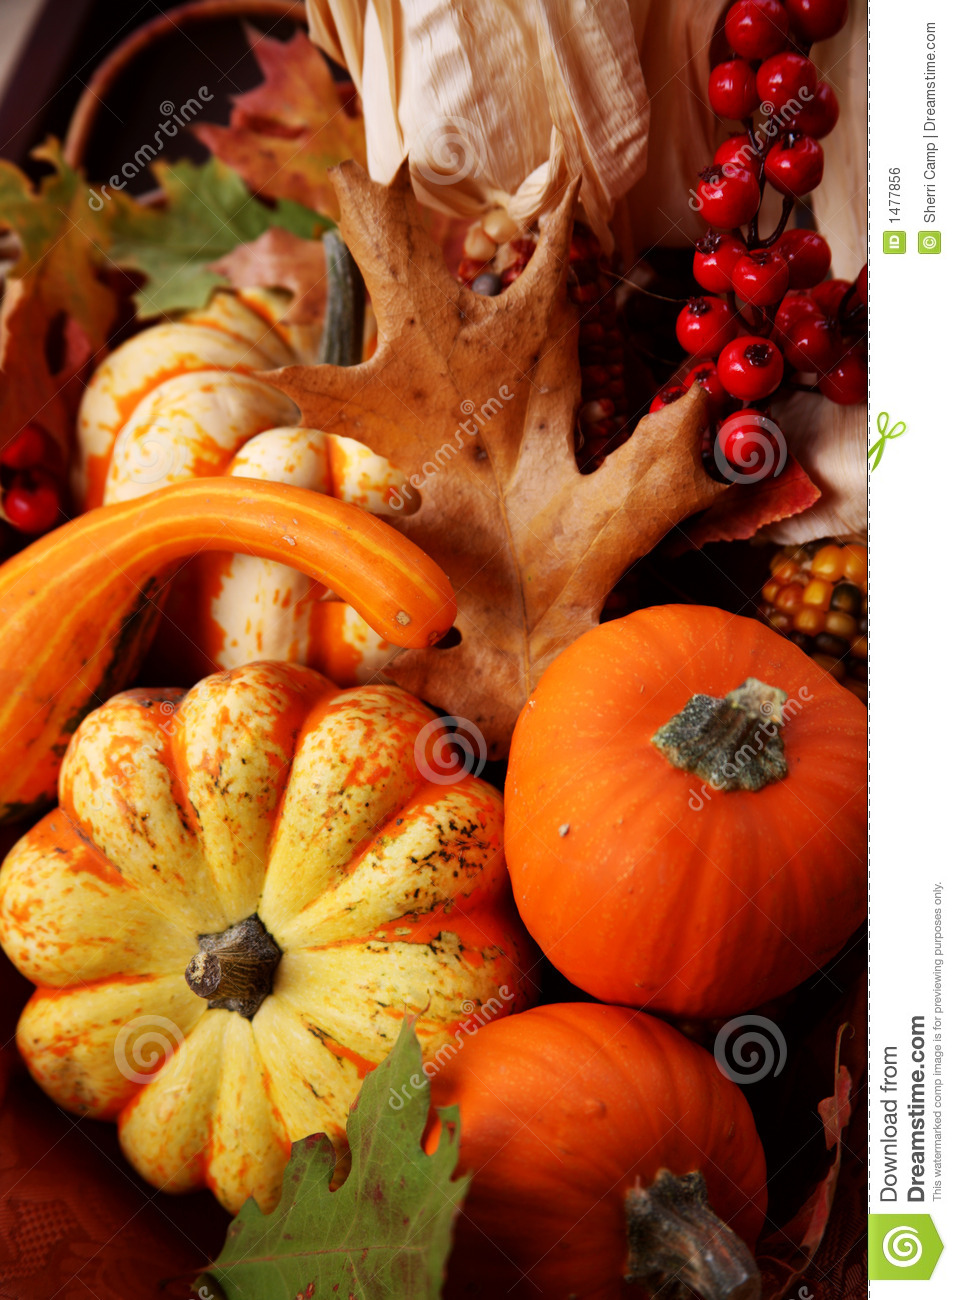 Fall Pumpkin Wallpaper Thanksgiving Fall Harvest Stock Photo Image Of Colorful